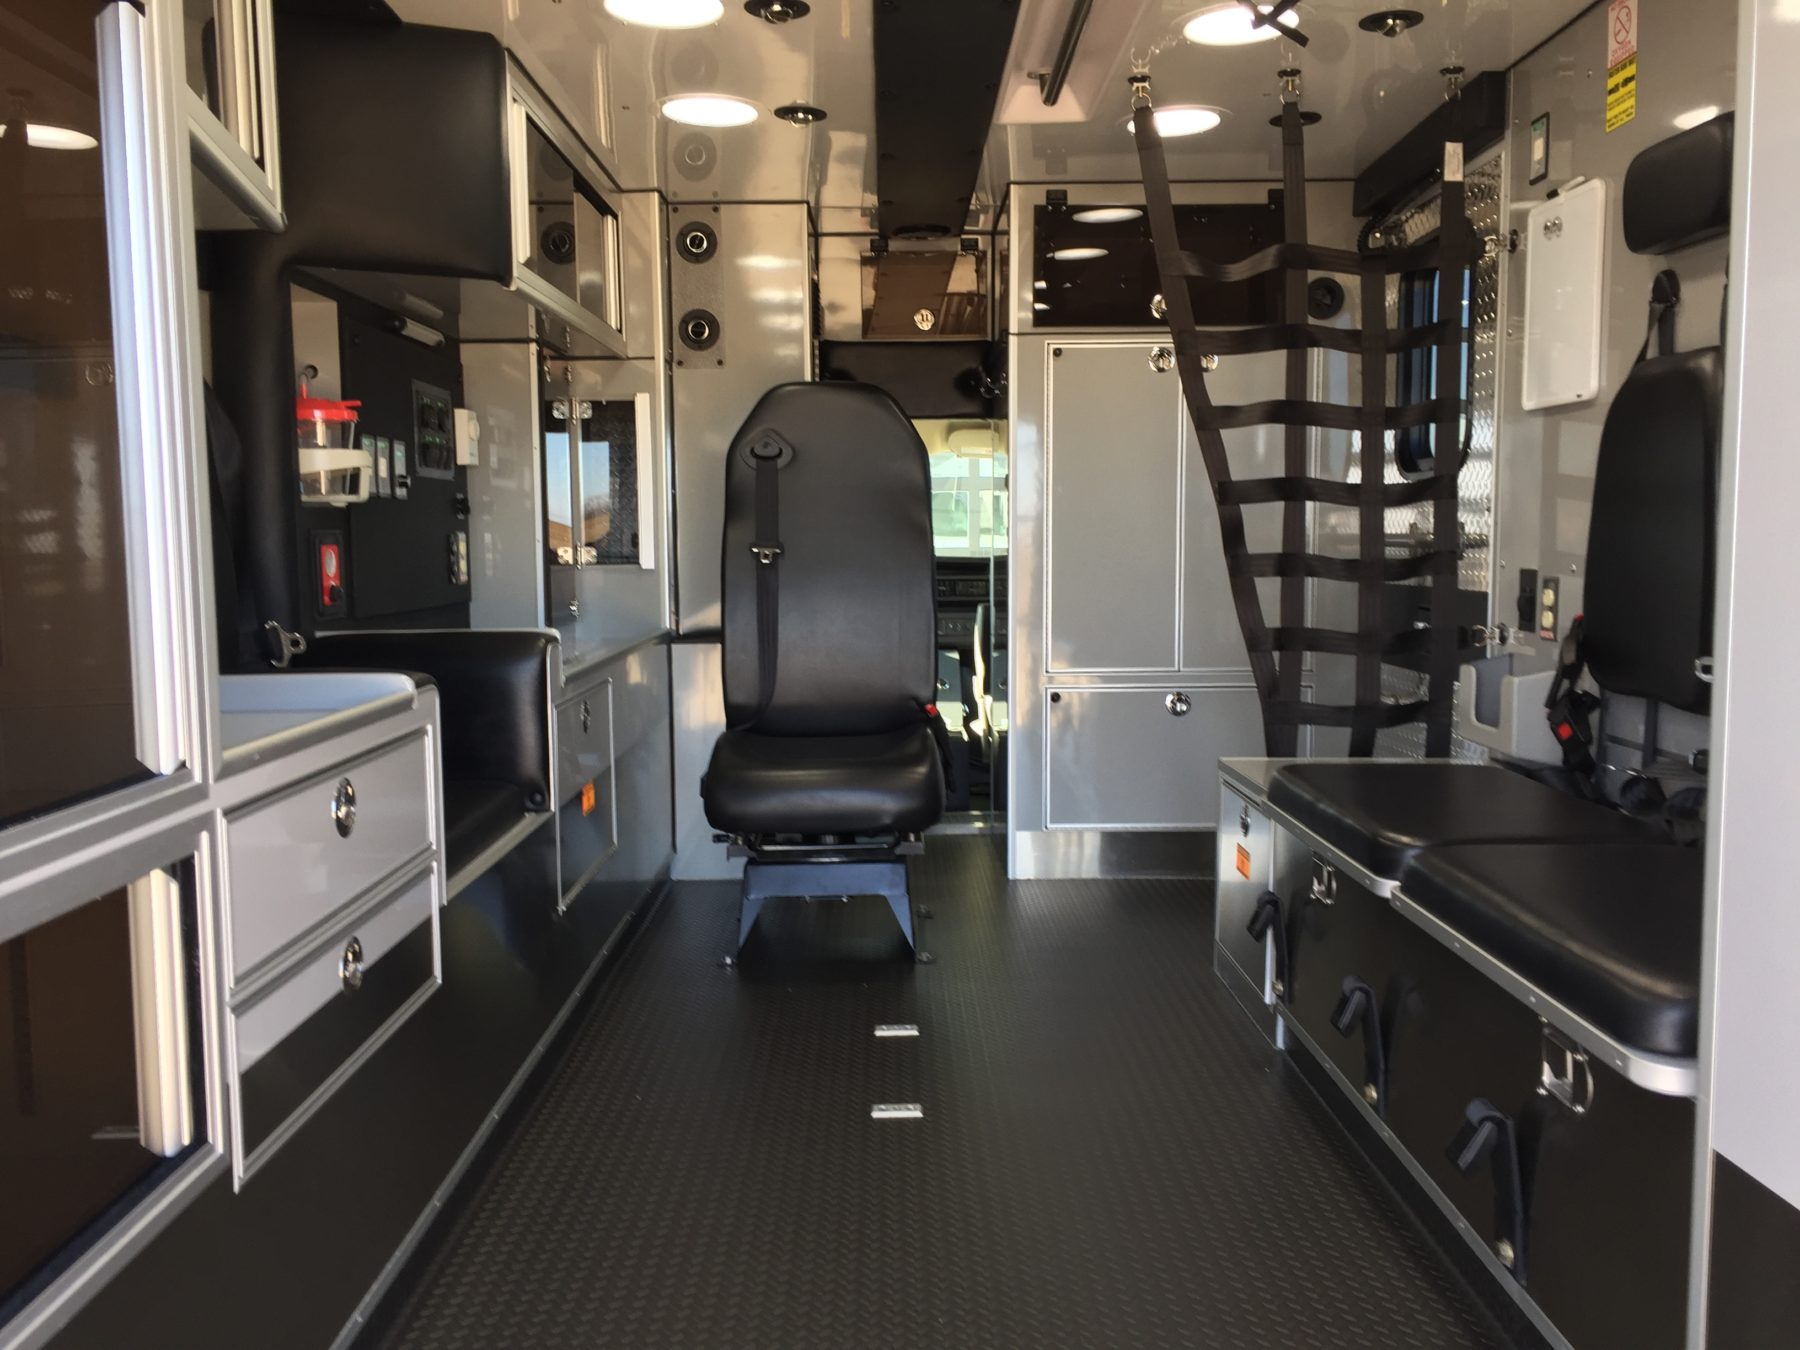 2016 Chevrolet G4500 Type 3 Ambulance For Sale – Picture 2